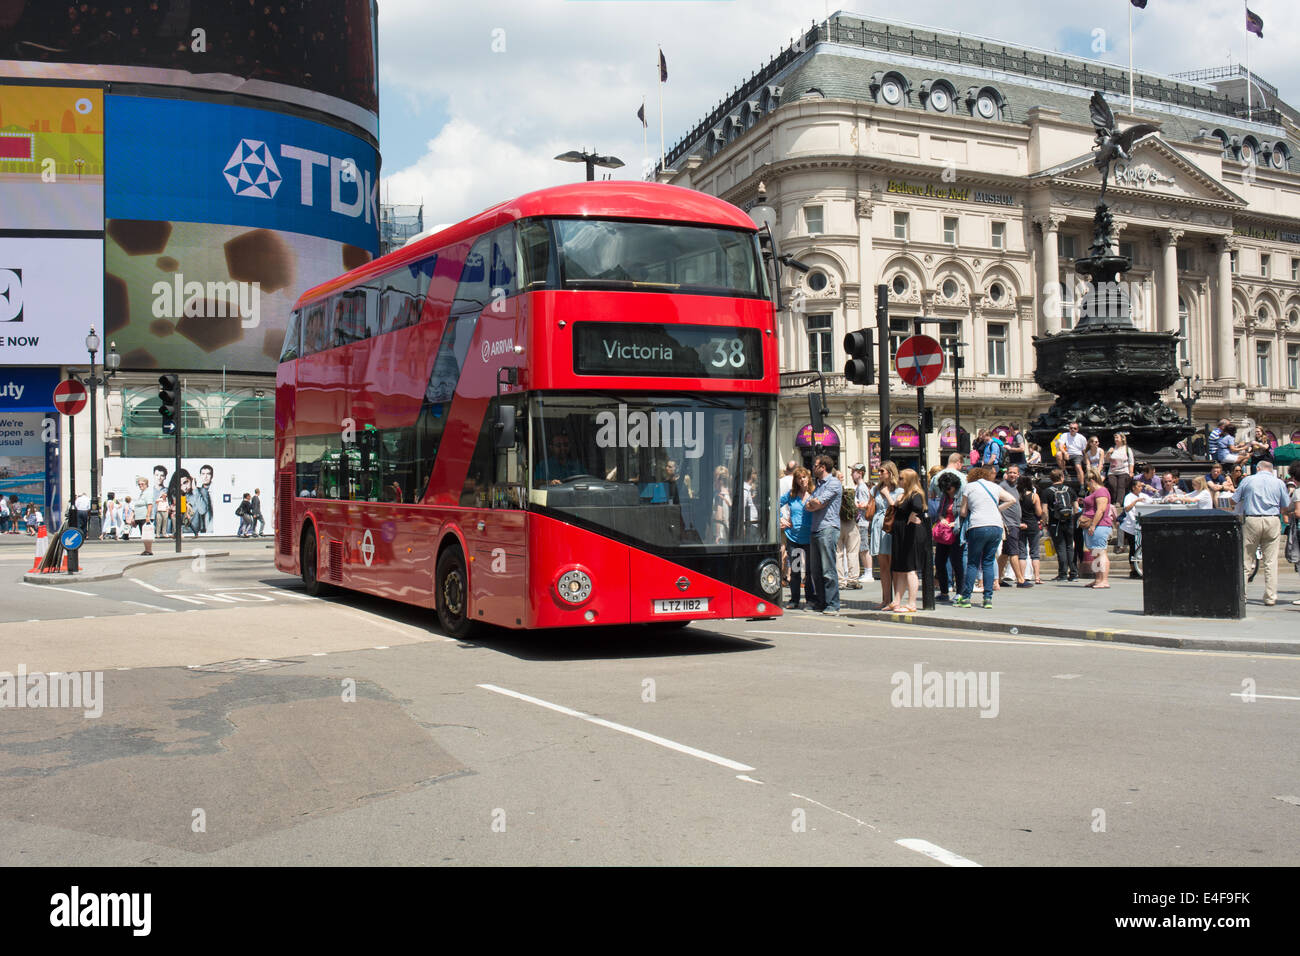 A recently delivered New Routemaster (New bus for London) on route 38 passes Eros in Piccadilly Circus, London - Stock Image